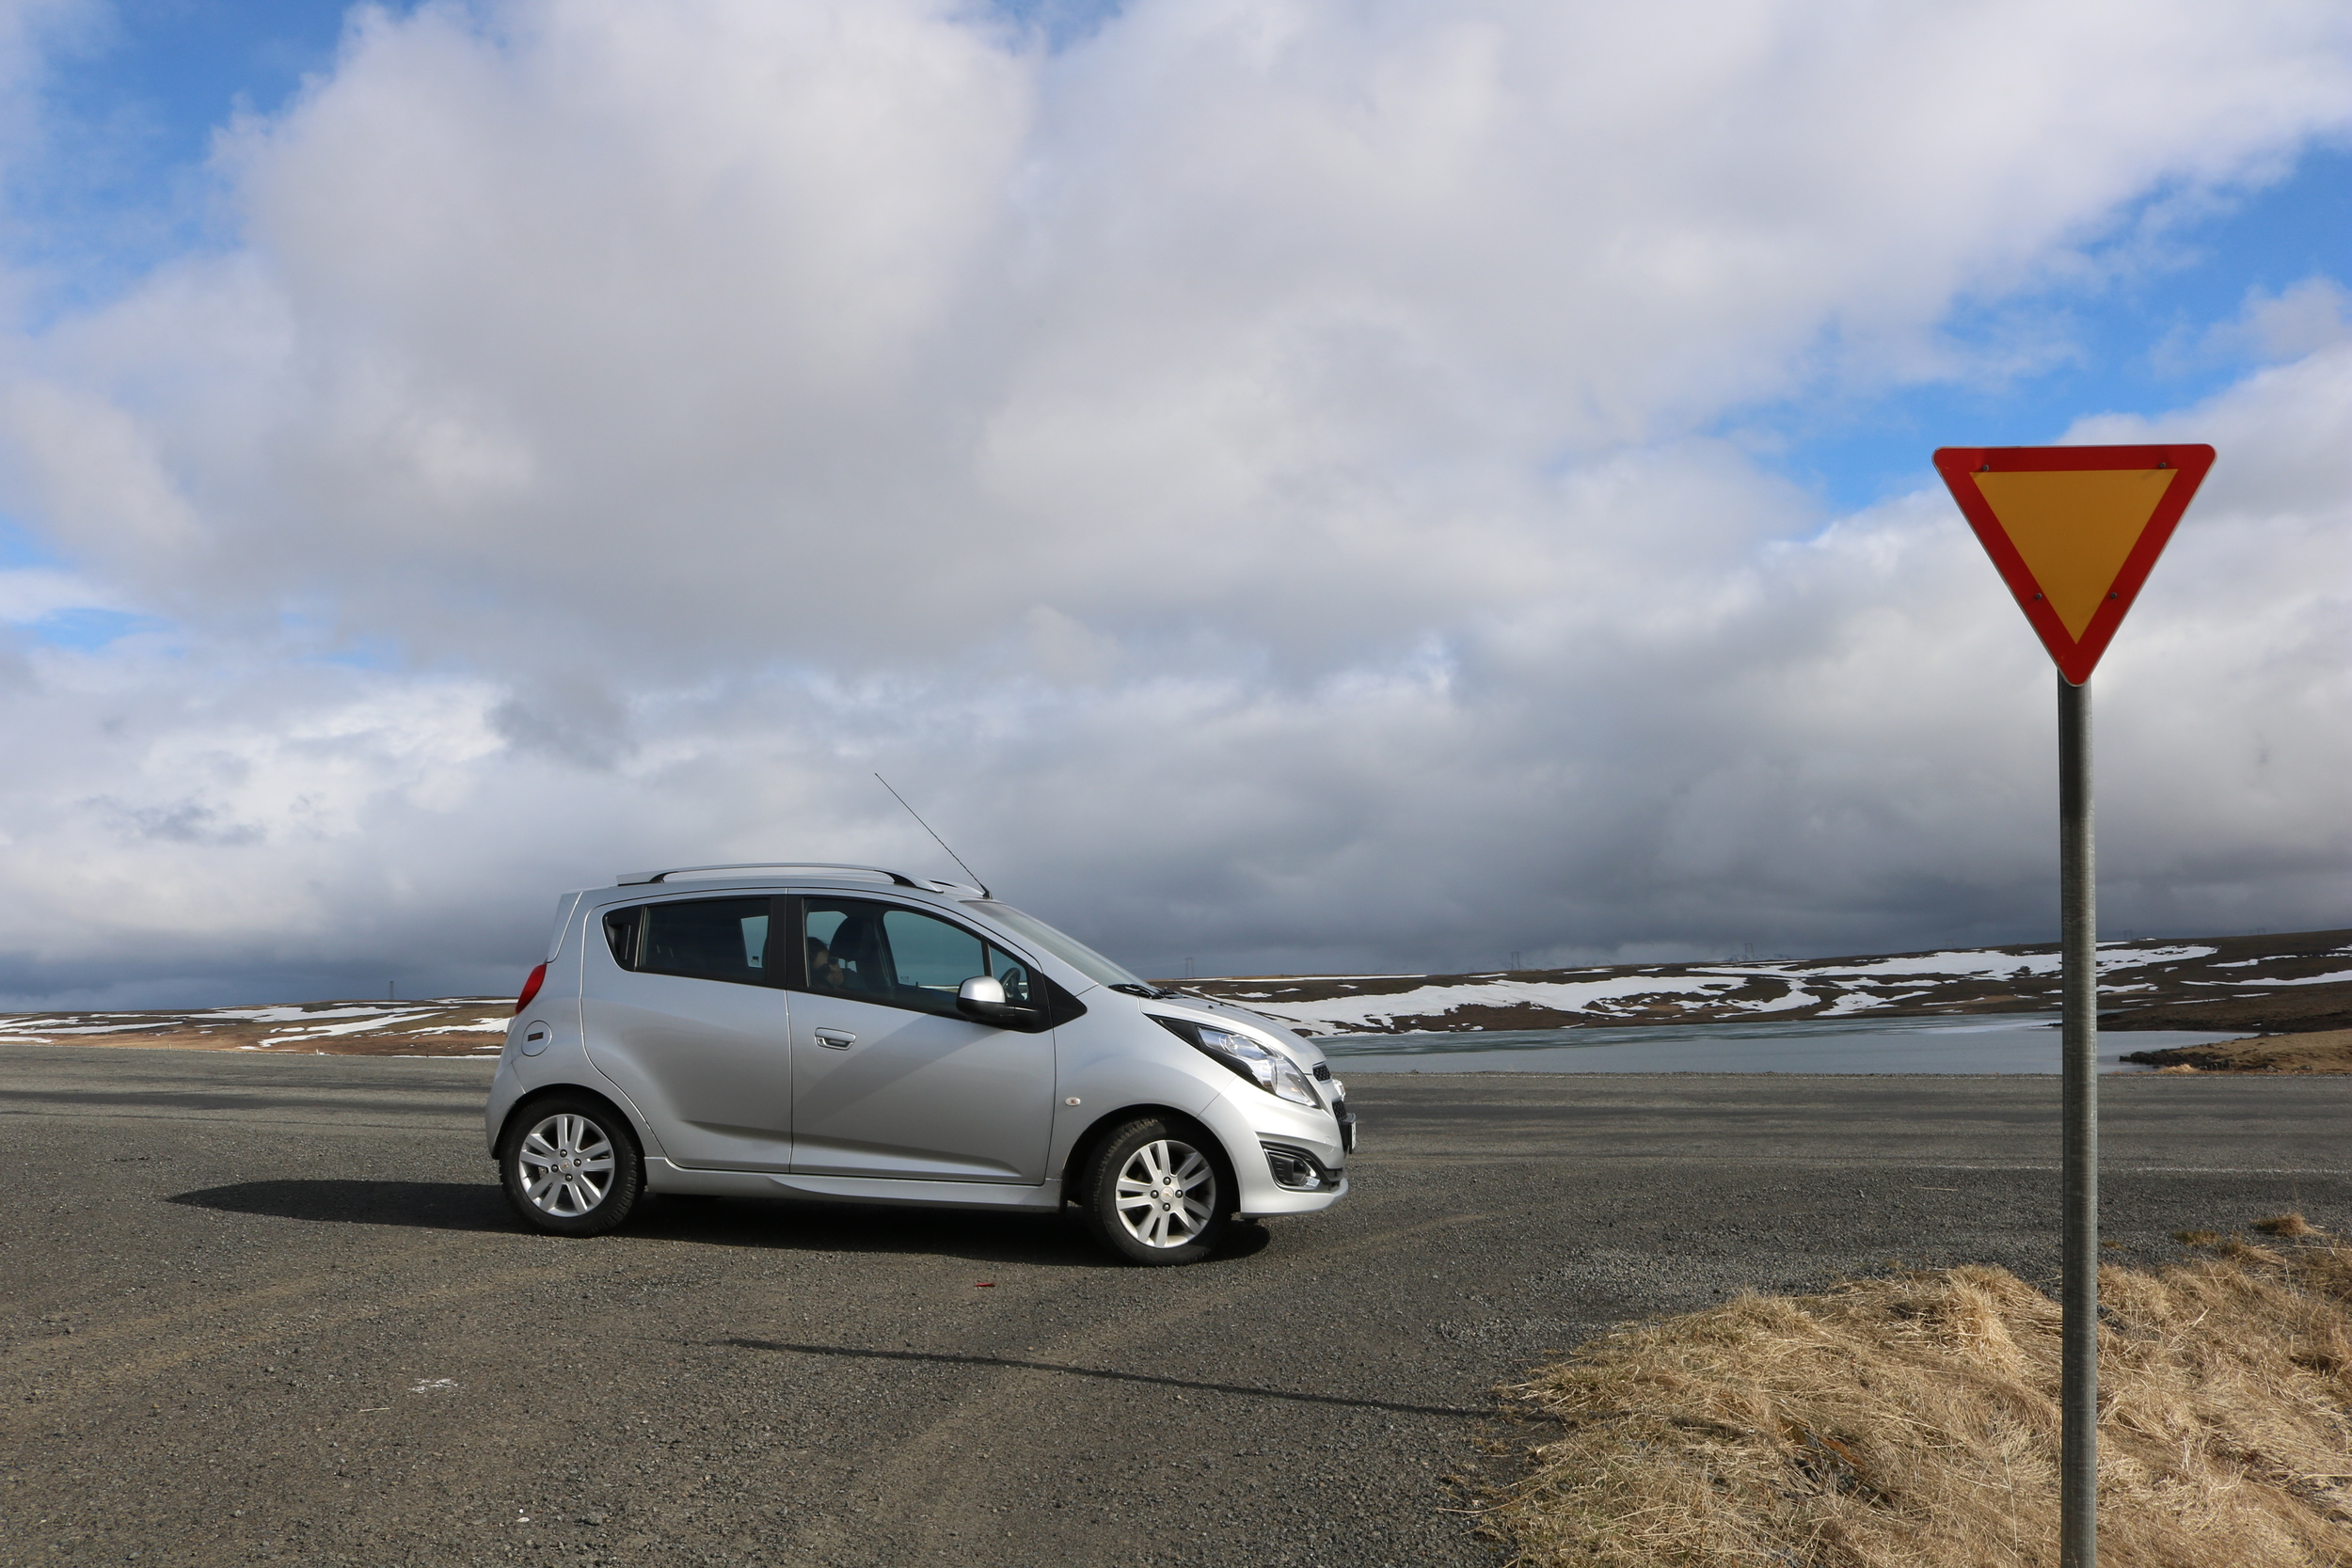 The best way to explore Iceland? By foot, but car is the best way to get to those hiking spots!